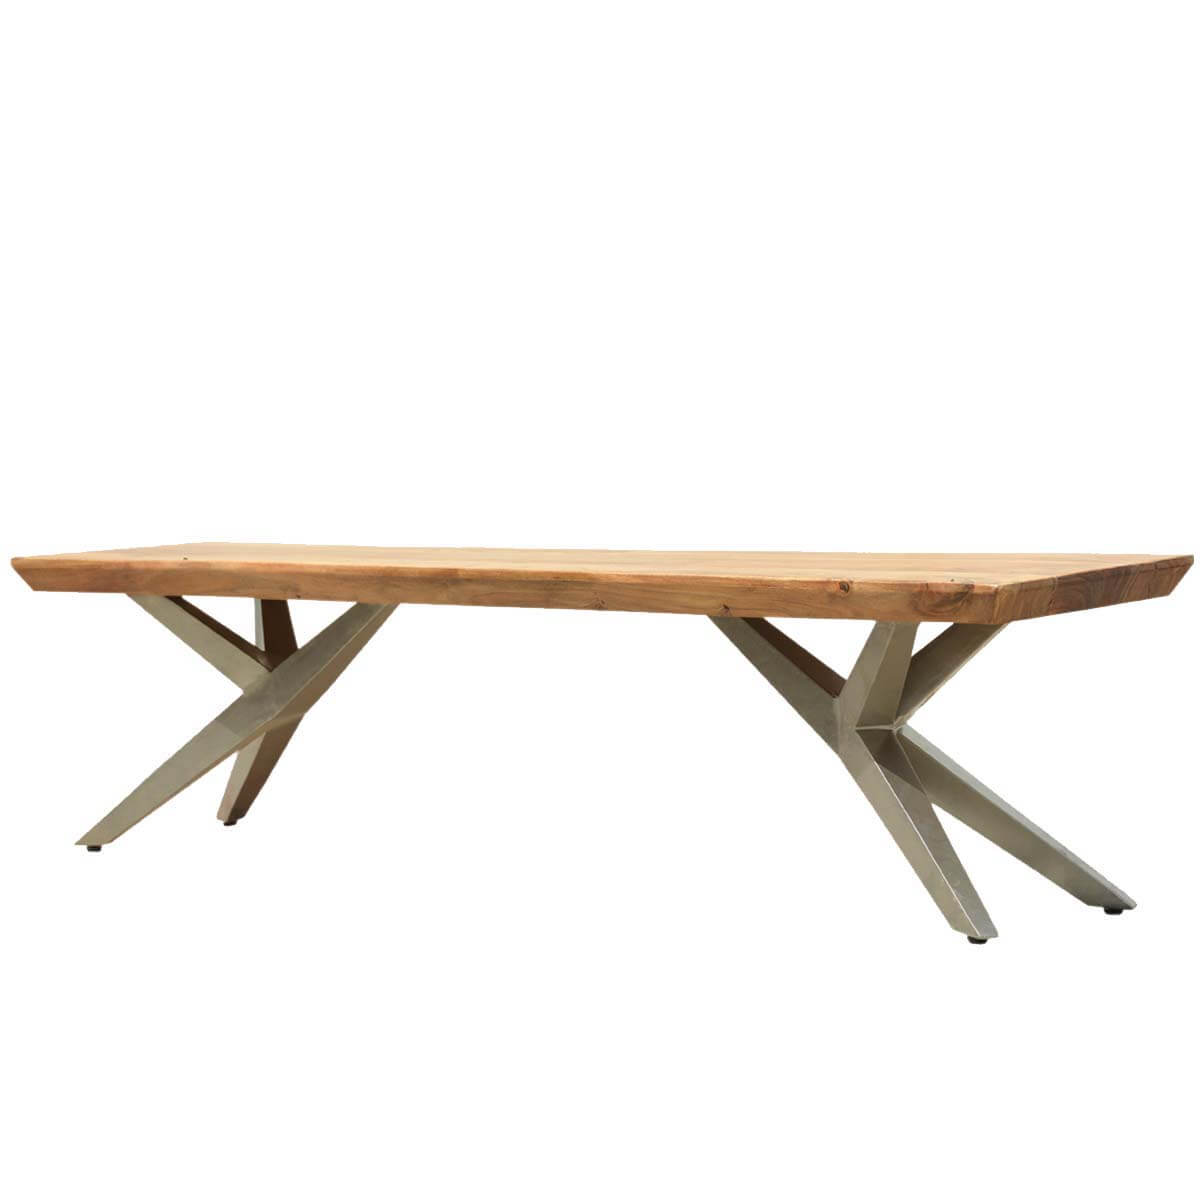 Modern Wood Bench : ... Room Dining Benches Rustic Contemporary Acacia Wood Airloft Bench